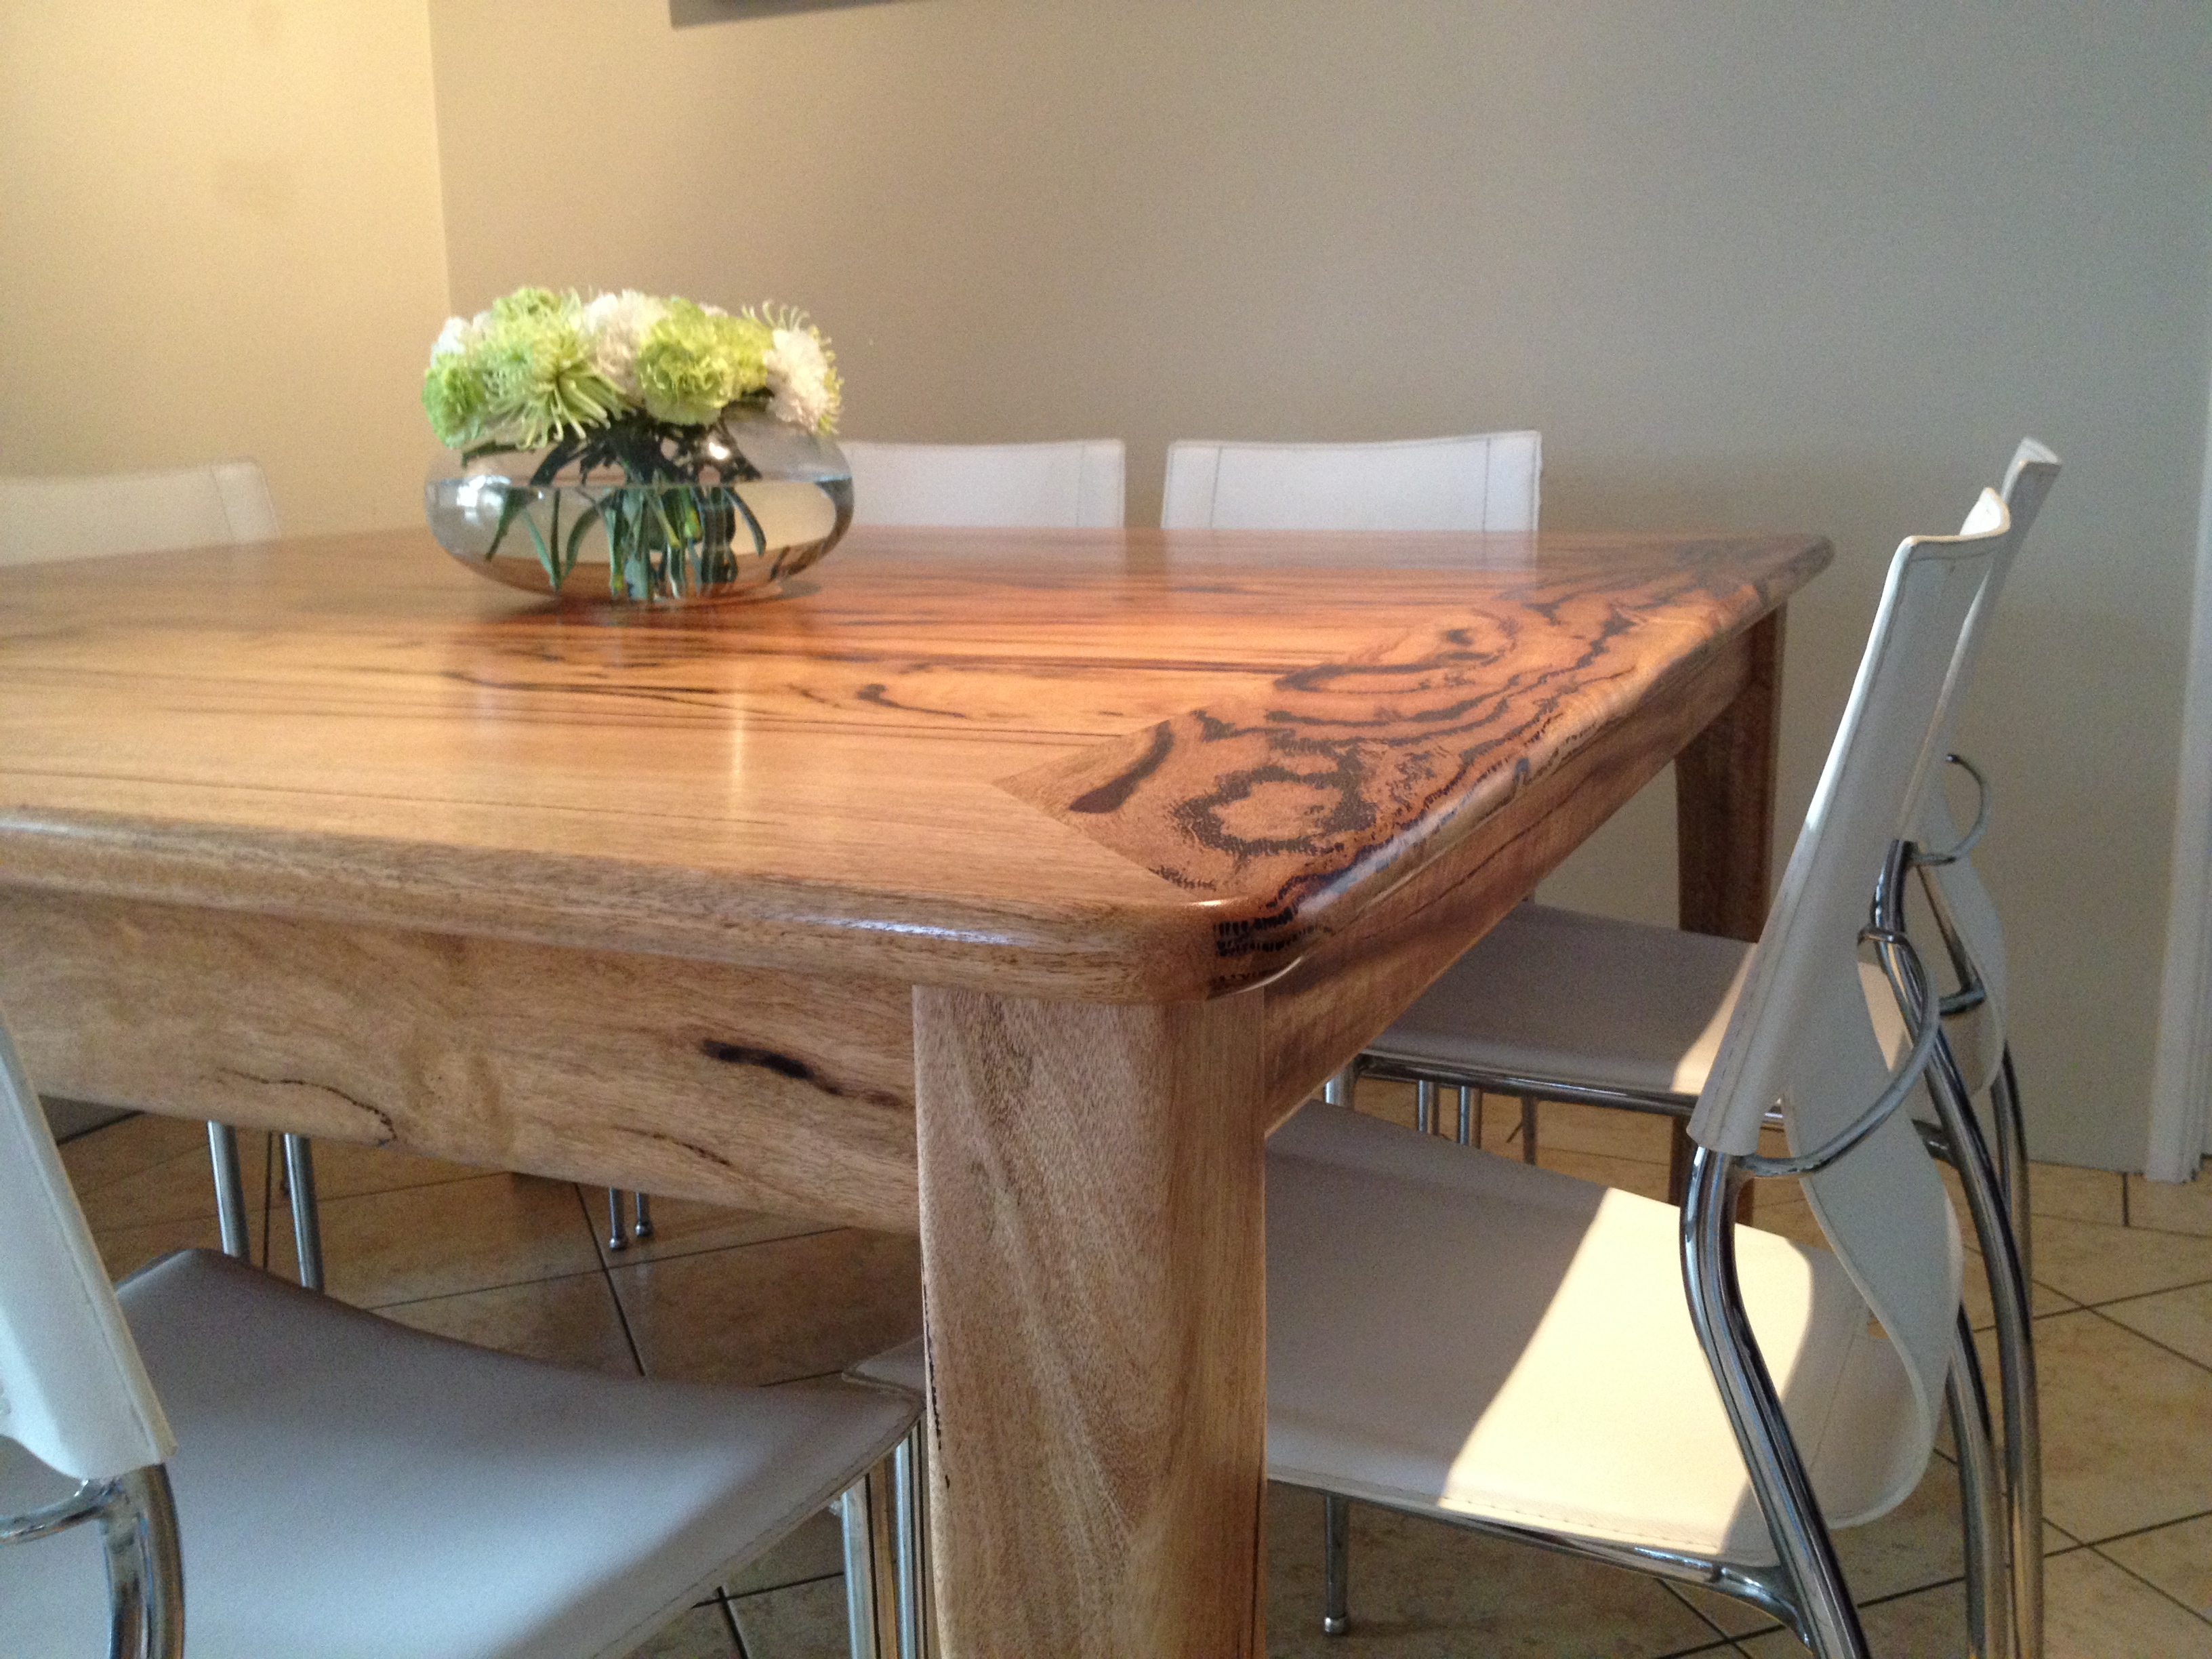 marri extendable dining room table completed